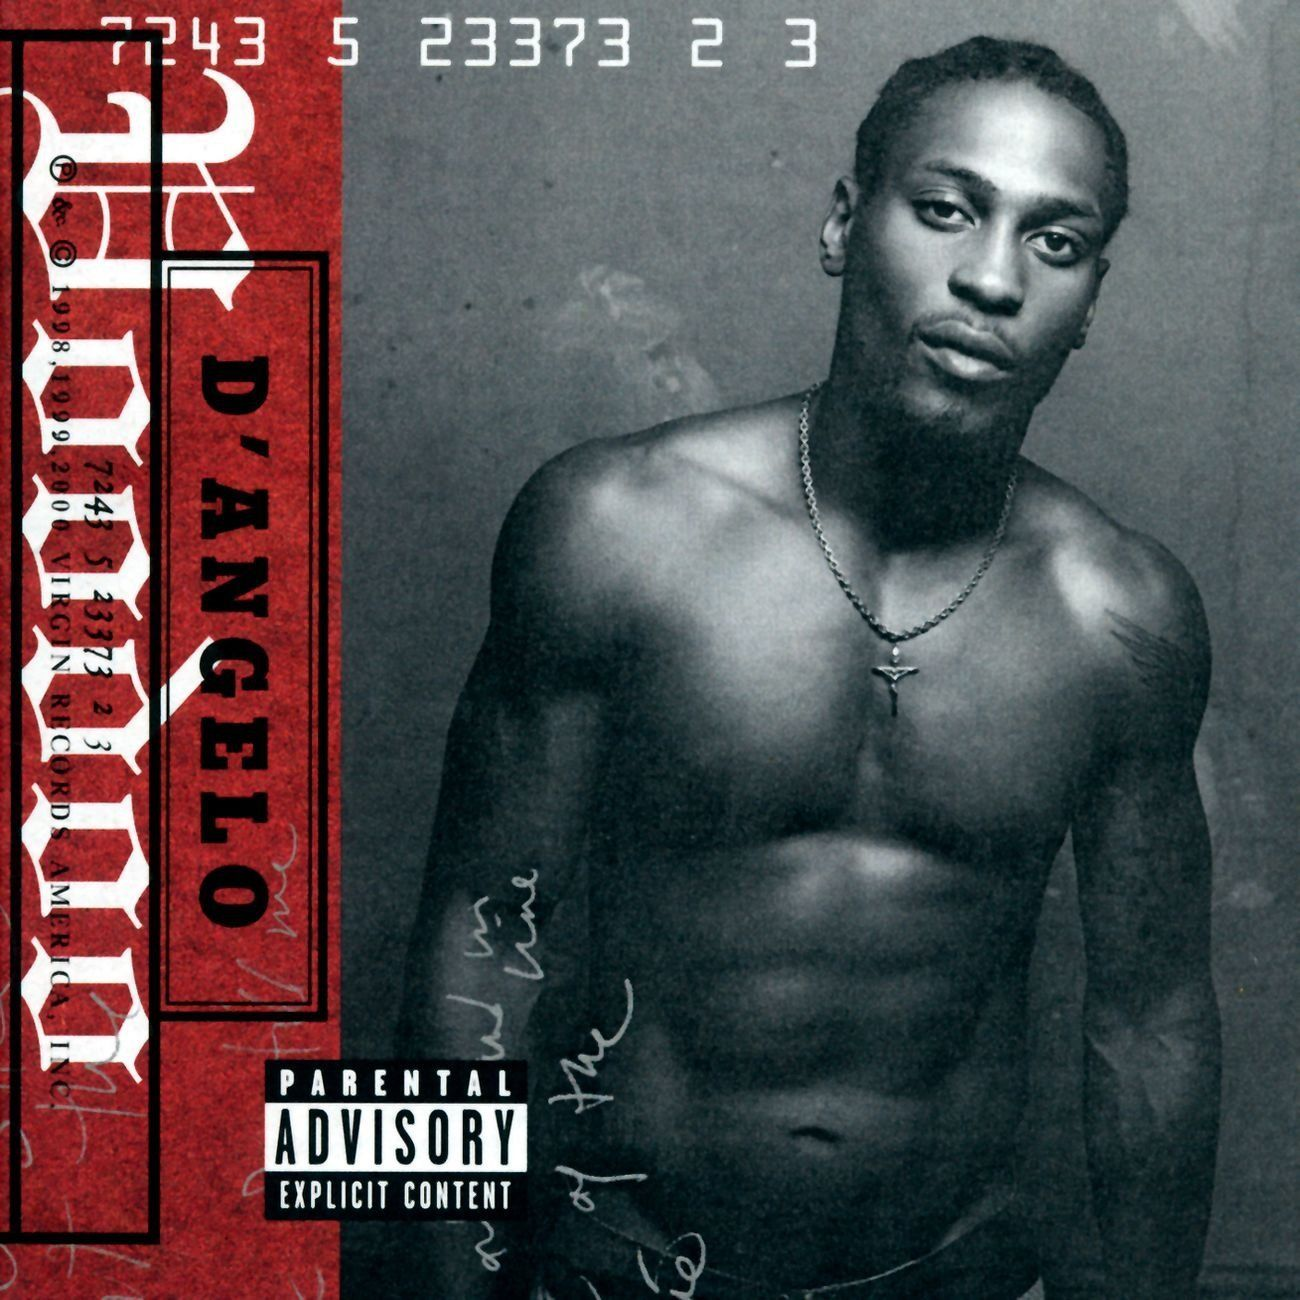 """Voodoo"" (D'Angelo, 2000) Registrato negli Electric Lady Studios di New York, contemporaneamente a ""Mama's Gun"" (Erykah Badu, 2000) e ""Like water for chocolate"" (Common, 2000). Tra i musicisti: Pino Palladino, J Dilla, Questlove. Registrato analogicamente da Russell Elevado, per ricreare il suono dei classici. Quest'album ha rivoluzionato profondamente la mia estetica musicale. #dangelo #voodoo #neosoul #questlove #jdilla #pinopalladino #soulquarians"